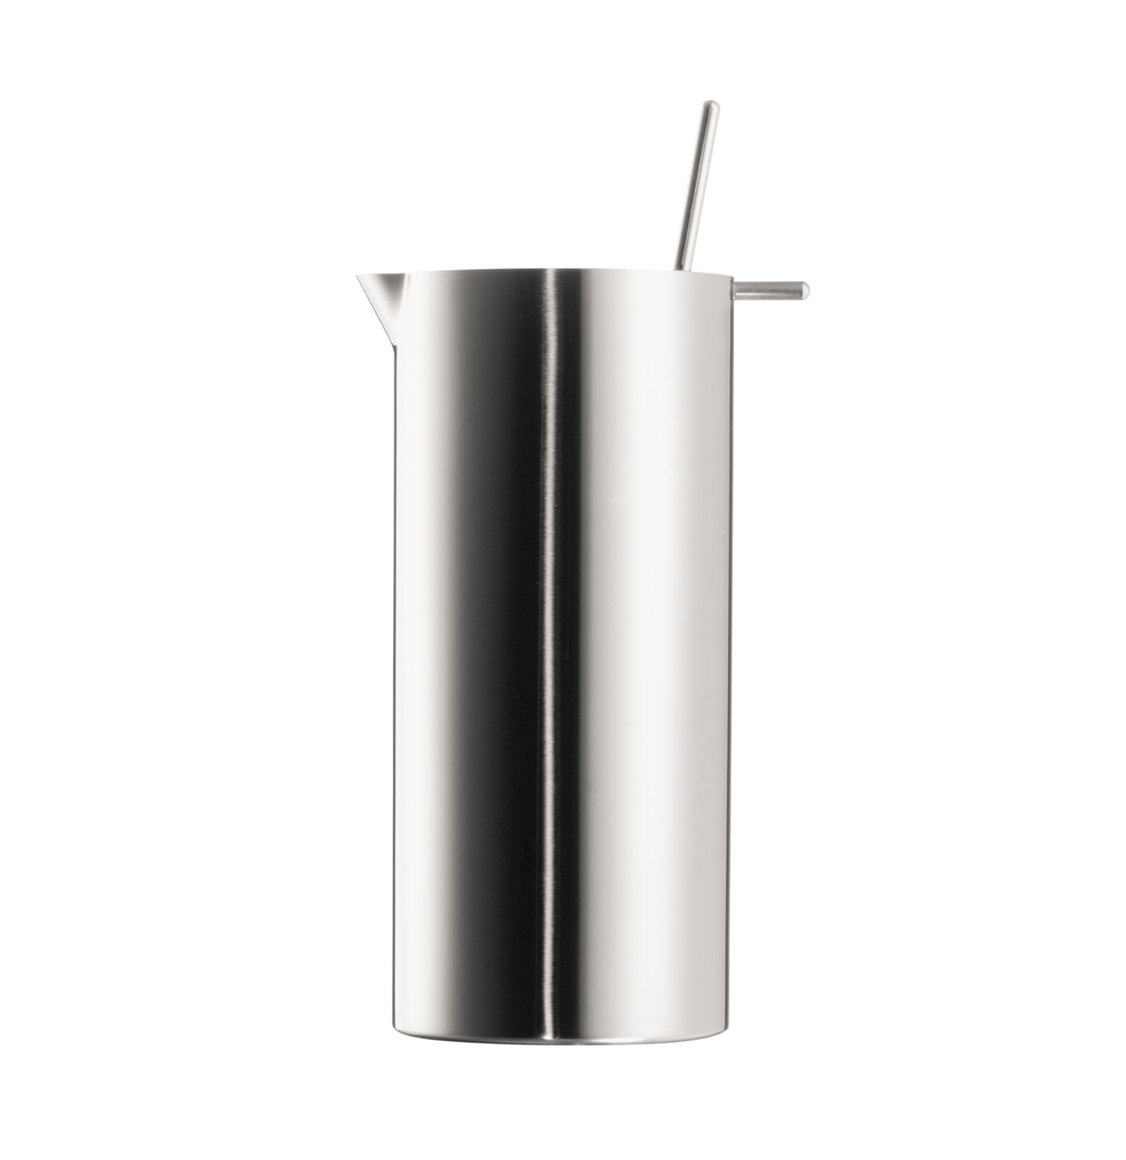 Stelton_Martini_Mixer_With_Spoon_The_Project_Garments_A